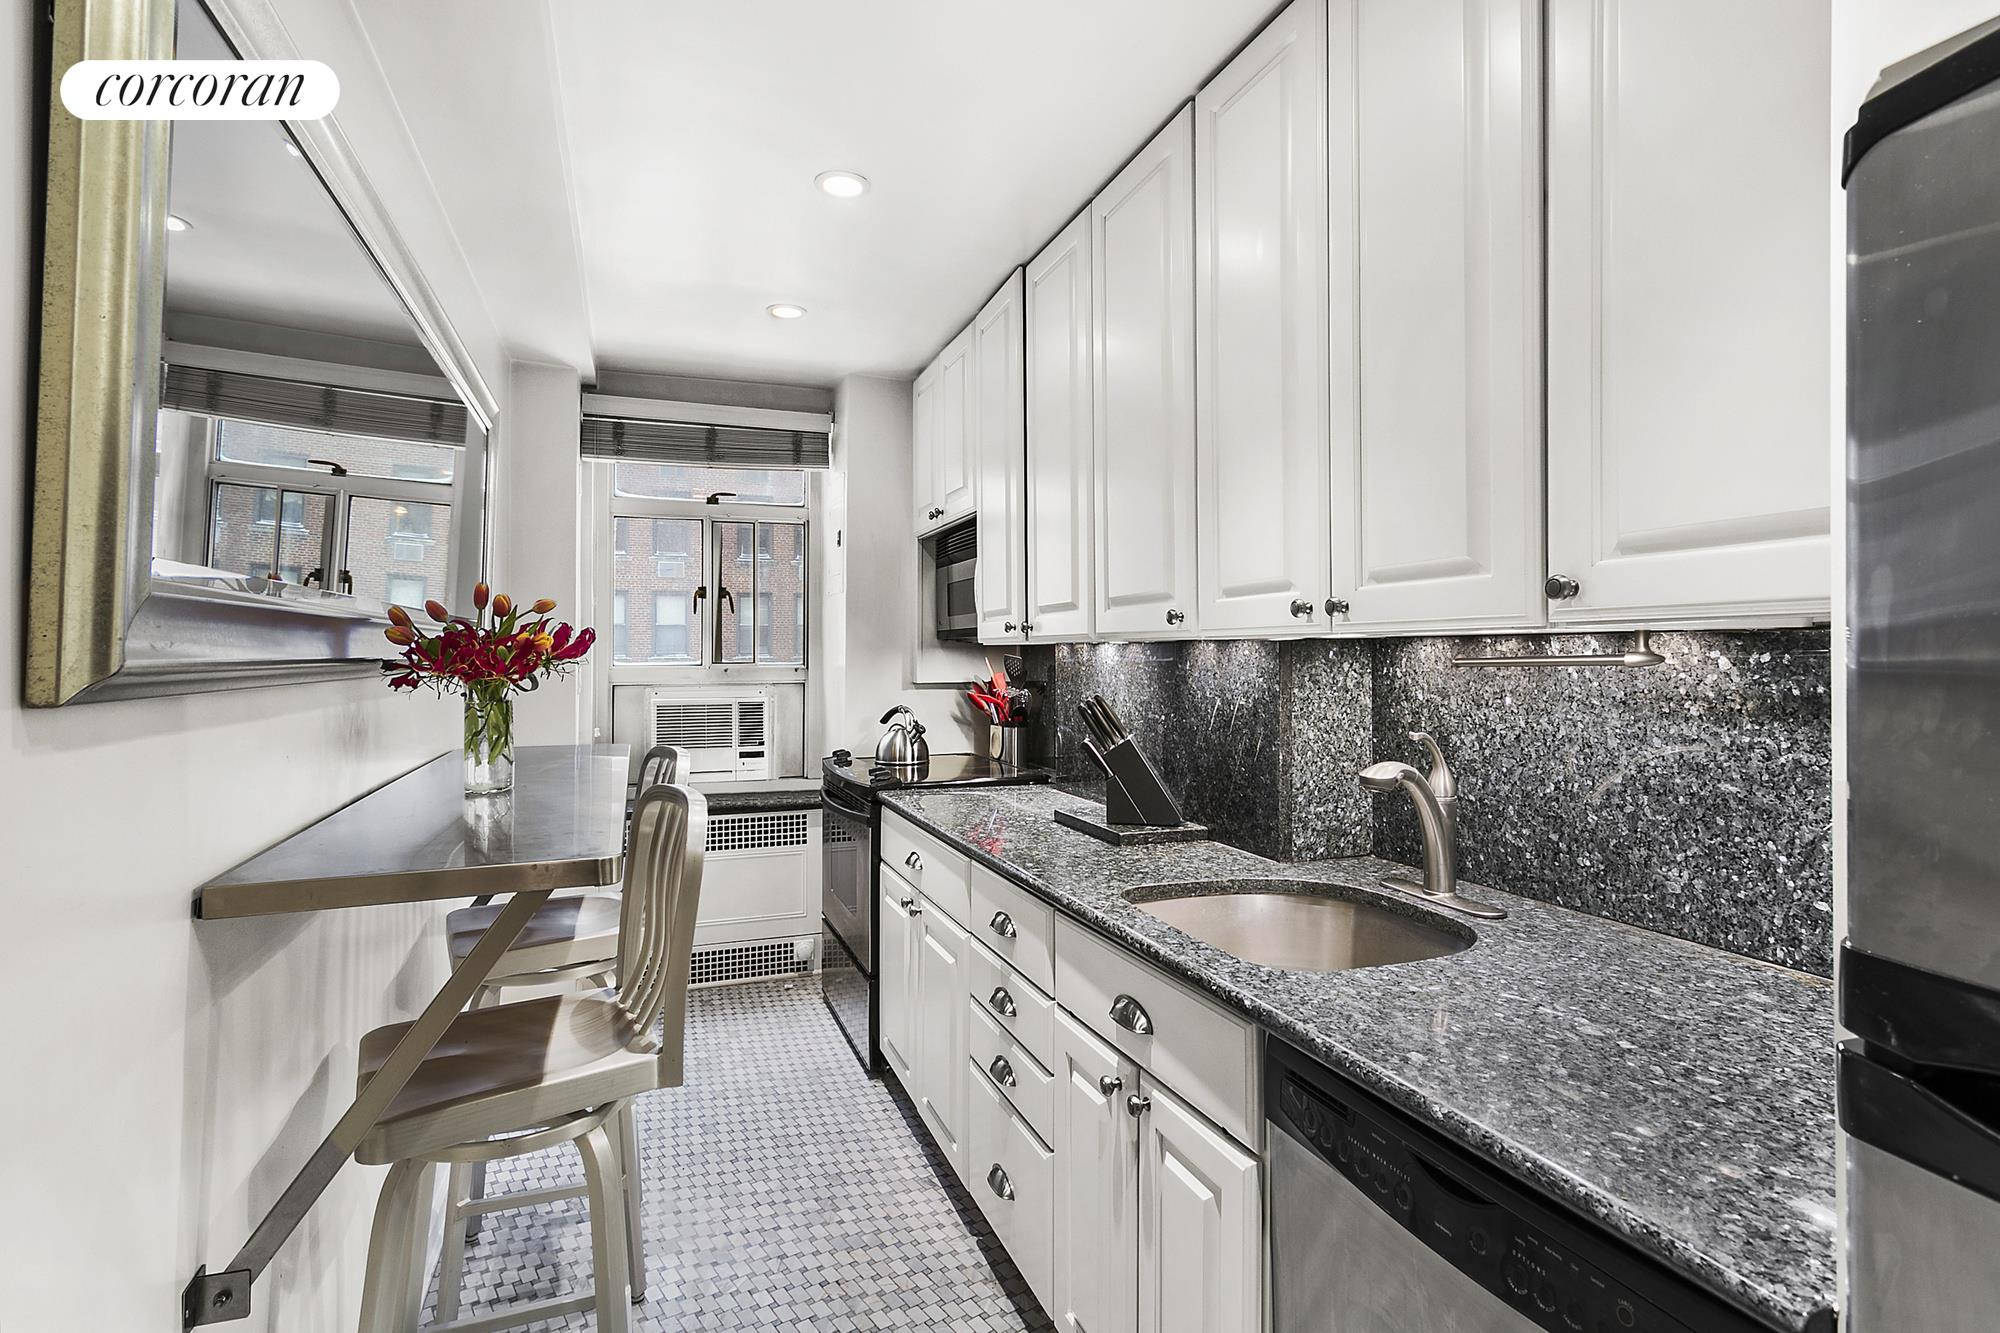 Corcoran, 19 East 88th Street, Apt. 7H, Carnegie Hill Real Estate ...